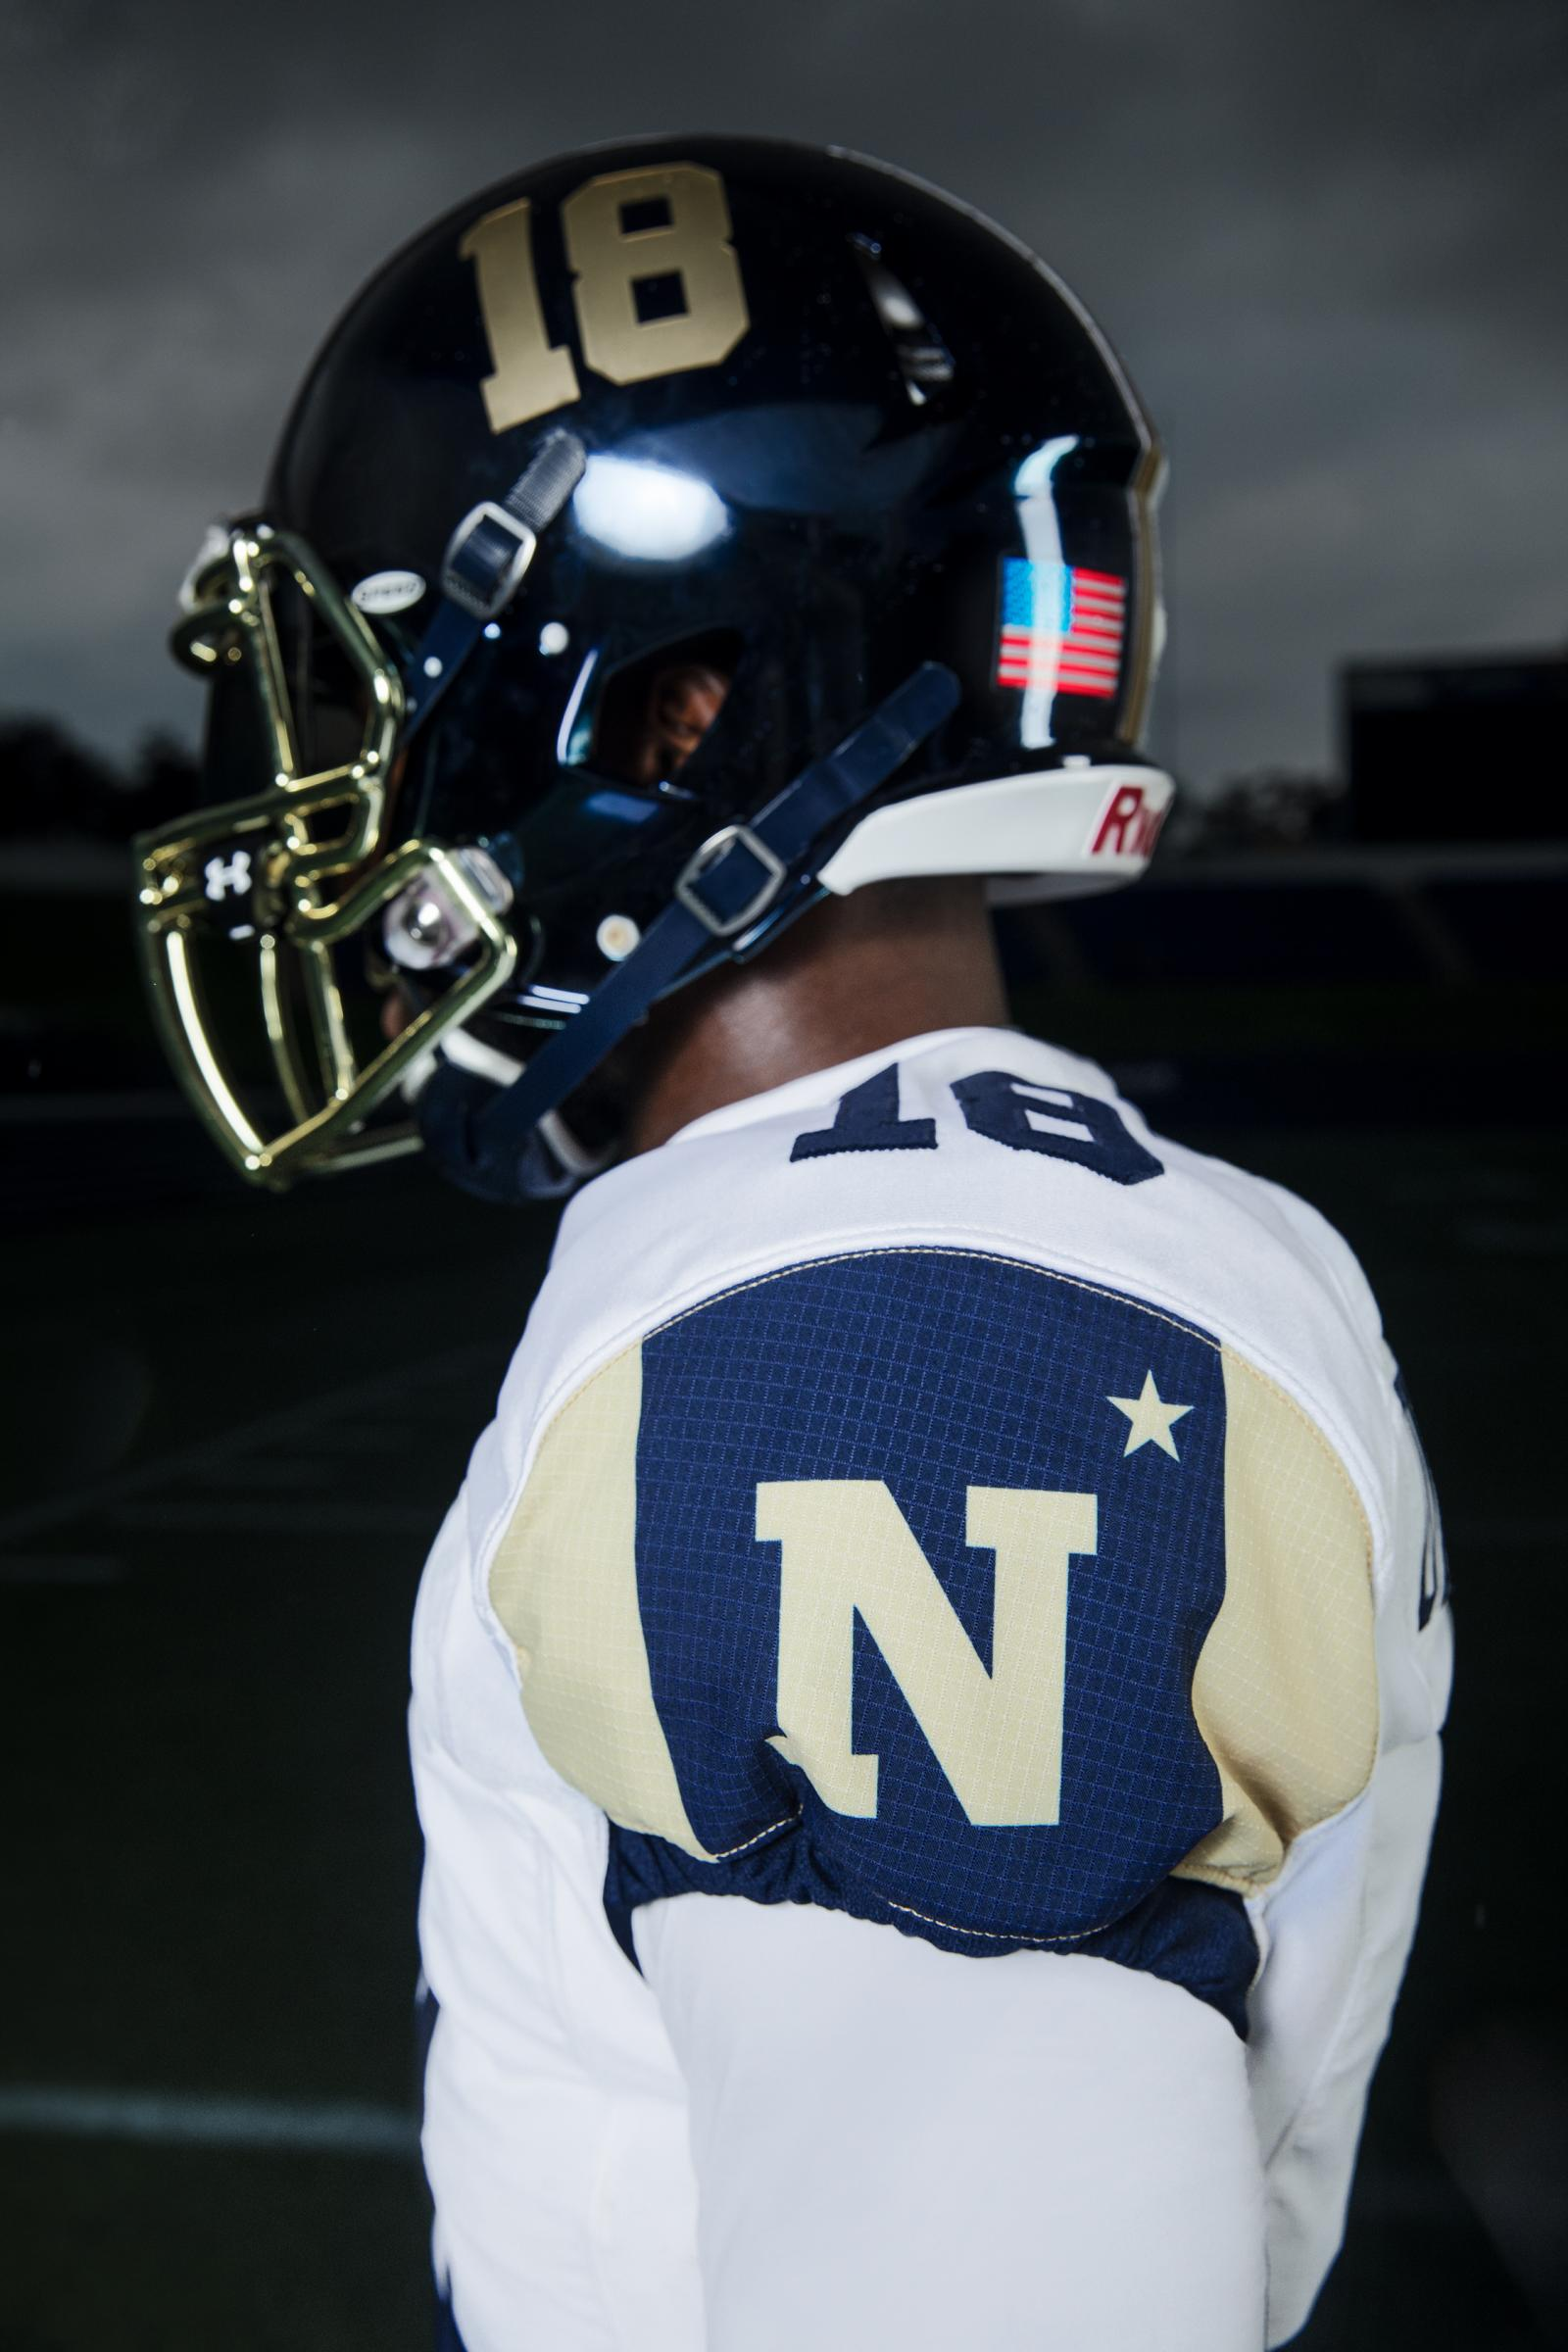 The sleeves of the jersey are navy blue in color and feature two stripes on the outside with the Navy logo in the center. This color-blocking look was inspired directly from the trim of the blanket popularly worn by Bill the Goat. 